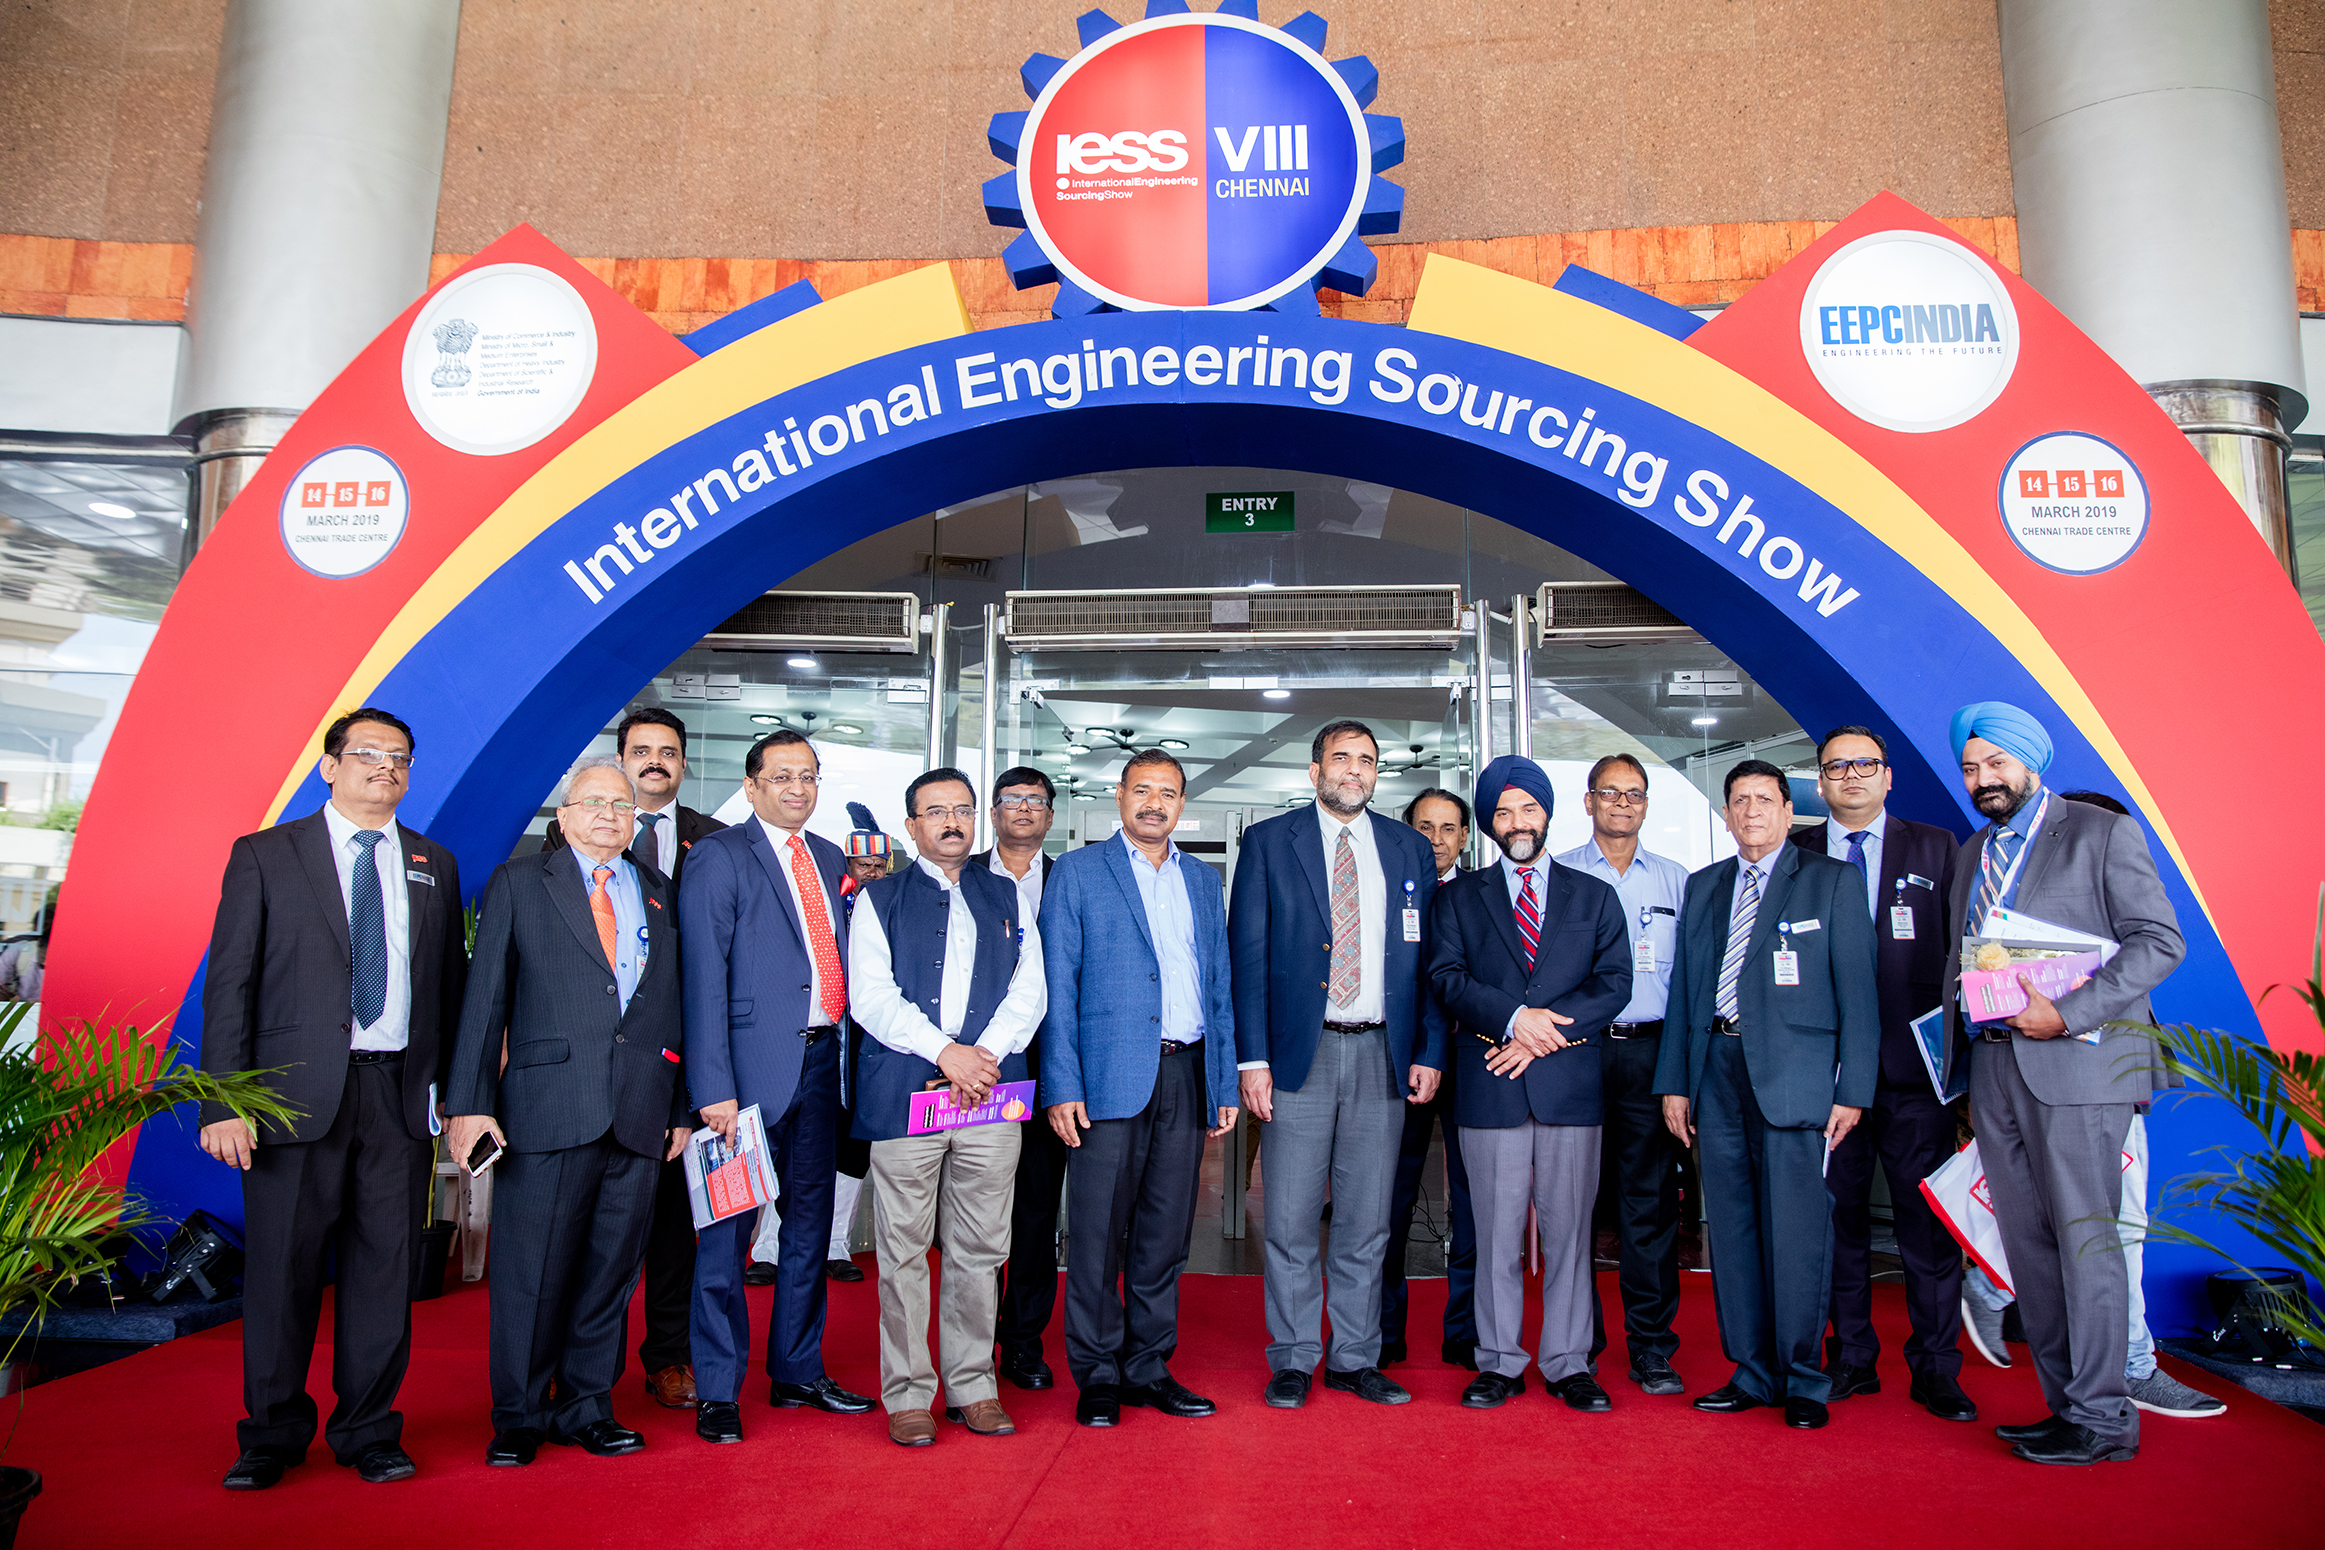 Dignitaries at the Main entrance to IESS VIII 2019 : Dr Anup Wadhawan, Commerce Secretary, Dept of Commerce, Ministry of Commerce and Industry, Govt of India ( front row : 4th from right), (on his left) : Mr B S Bhalla, Joint Secretary, Dept of Commerce, Ministry of Commerce and Industry,Govt of India; (on his right) Mr Dharmendra Pratap Yadav, Secretary, MSME, Govt of Tamil Nadu. Front row (from left) Mr C H Nadiger, Regional Director, (SR), EEPC India; Mr Mahesh K Desai, Sr Vice Chairman & Officiating as Regional Chairman (SR), EEPC India; Mr Anupam Shah, Former Chairman, EEPC India; Dr Rakesh Verma, Spl Secretary Industries, Govt of UP; Mr K L Dhingra, Regional Chairman (WR), EEPC India; Mr Gurvinder Singh, Director (Exhibitions), EEPC India. Second Row (Far left) Mr Rajat Srivastava, Regional Director (WR) and Director (Marketing & Sales), EEPC India and (far right) Mr Rakesh Suraj, Regional Director (NR), EEPC India